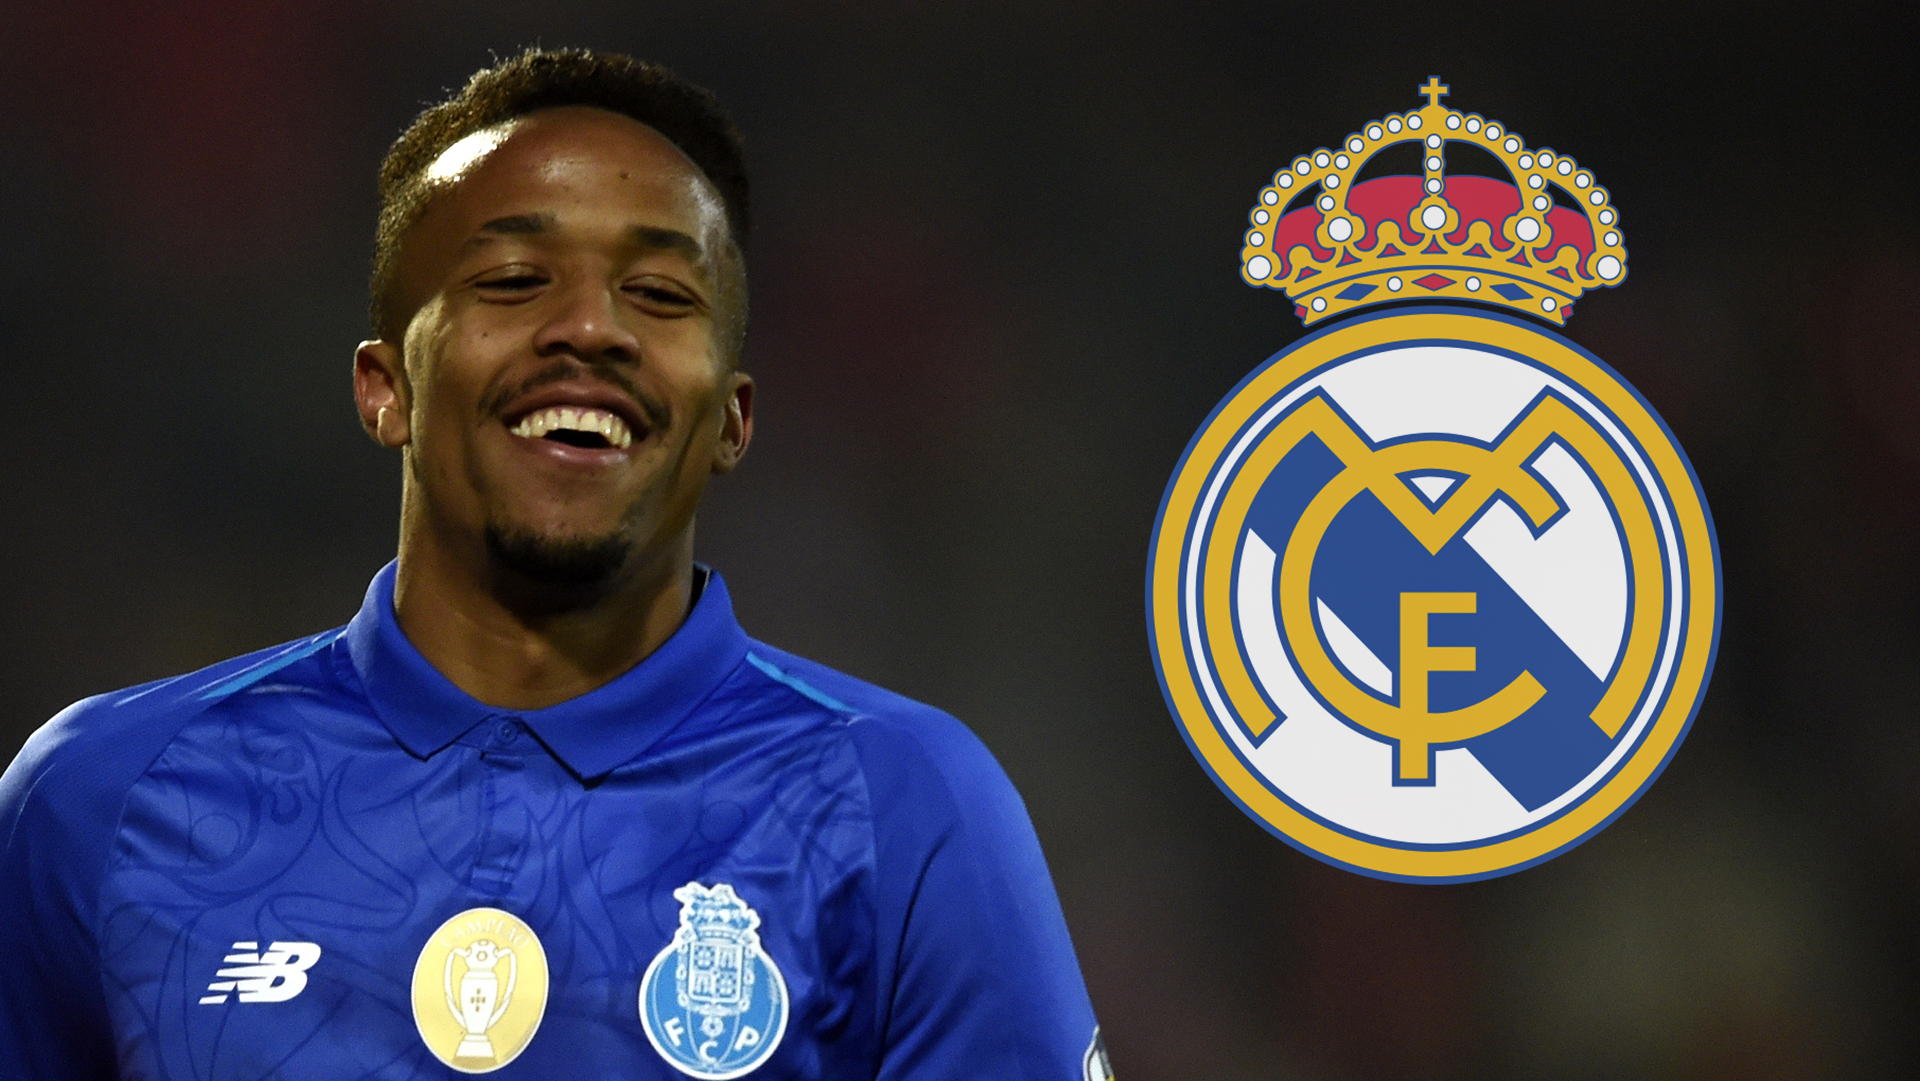 Madrid to sign Porto's Militao in $80 million deal